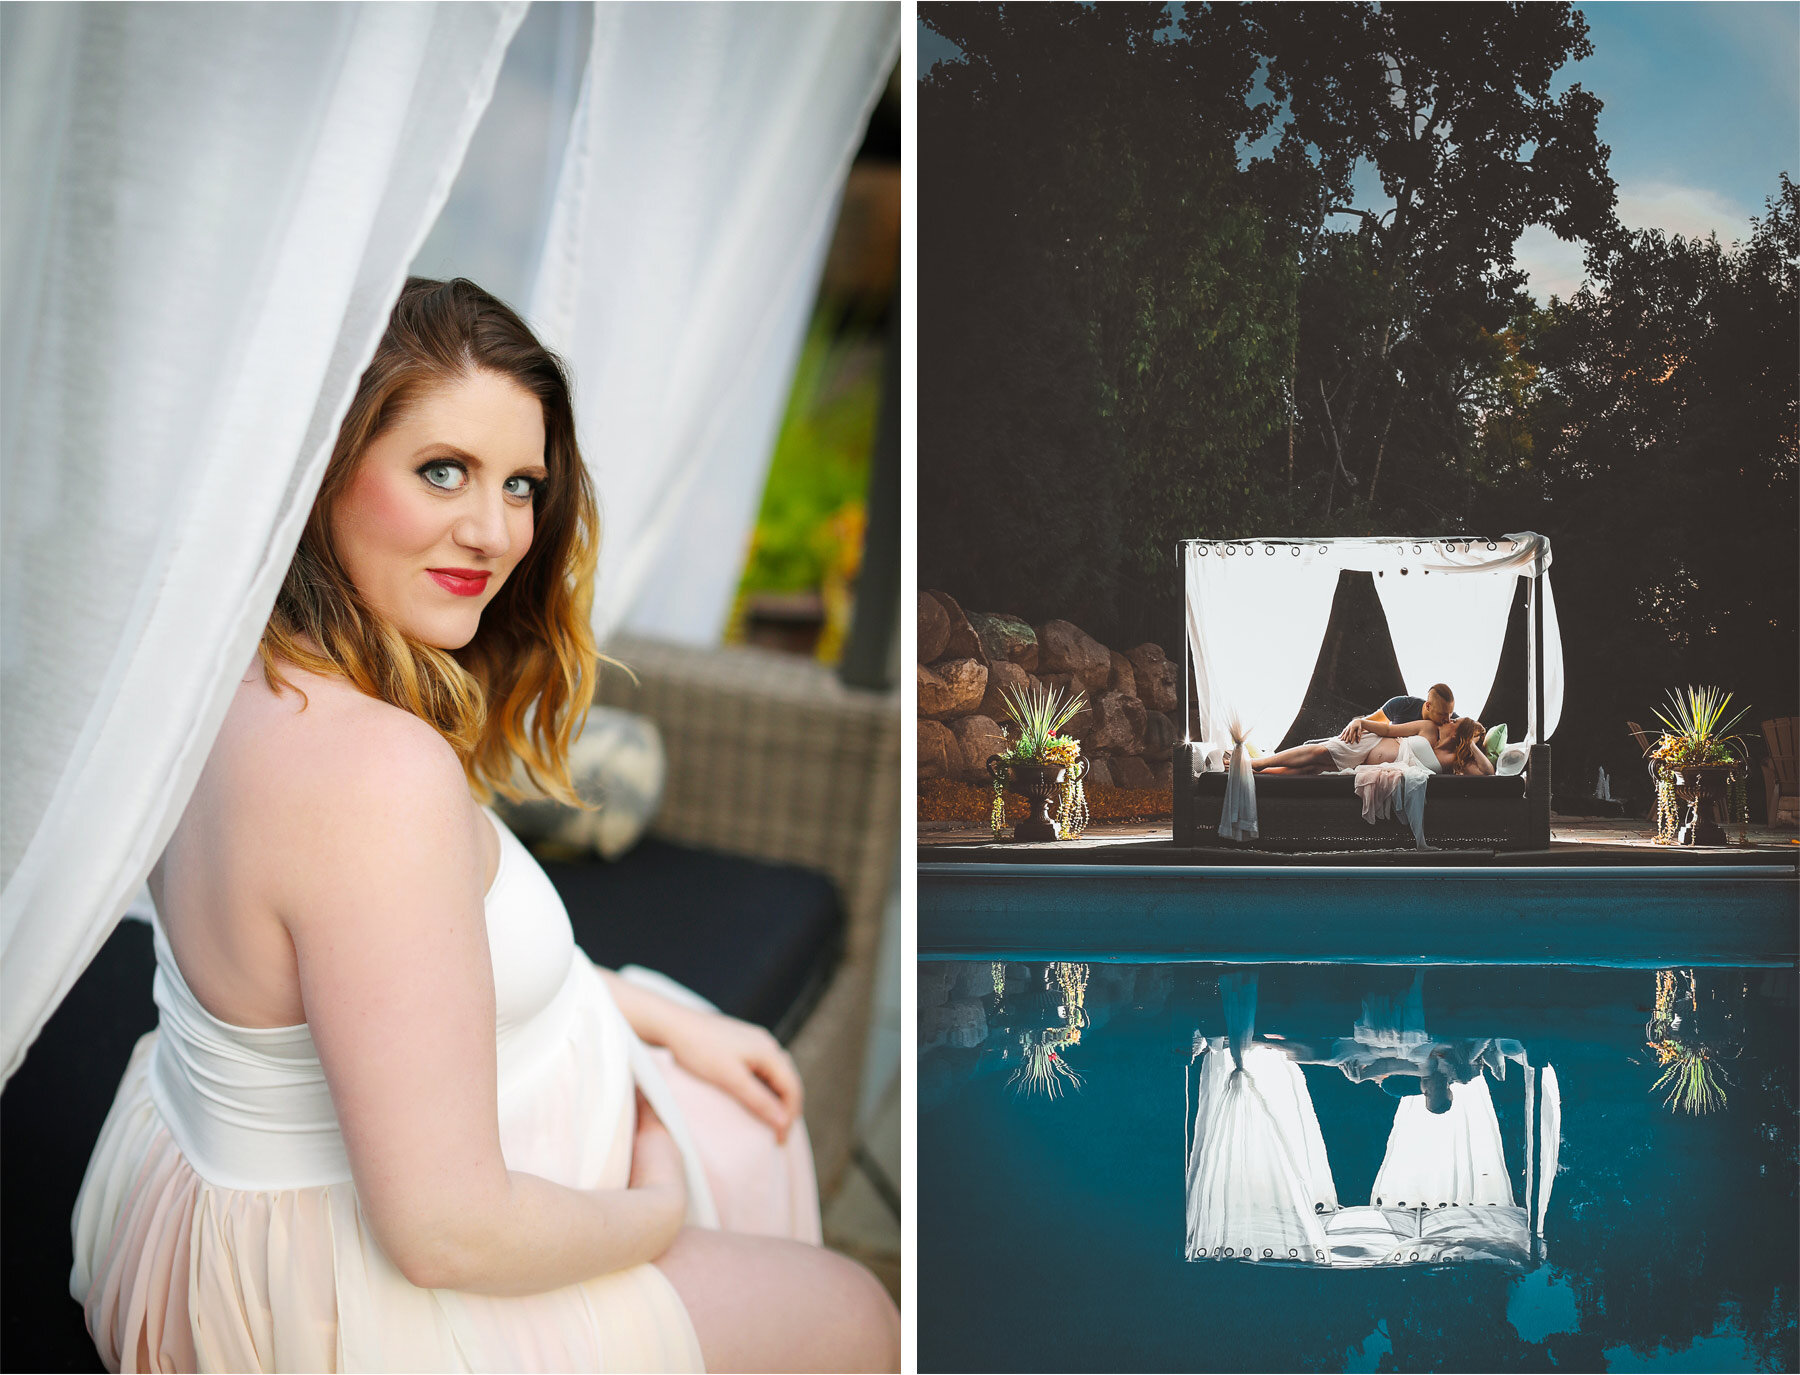 02-Vick-Studios-Maternity-Baby-Bump-Photo-Session-Mother-Father-Pool-Night-Carrie-and-Brian.jpg